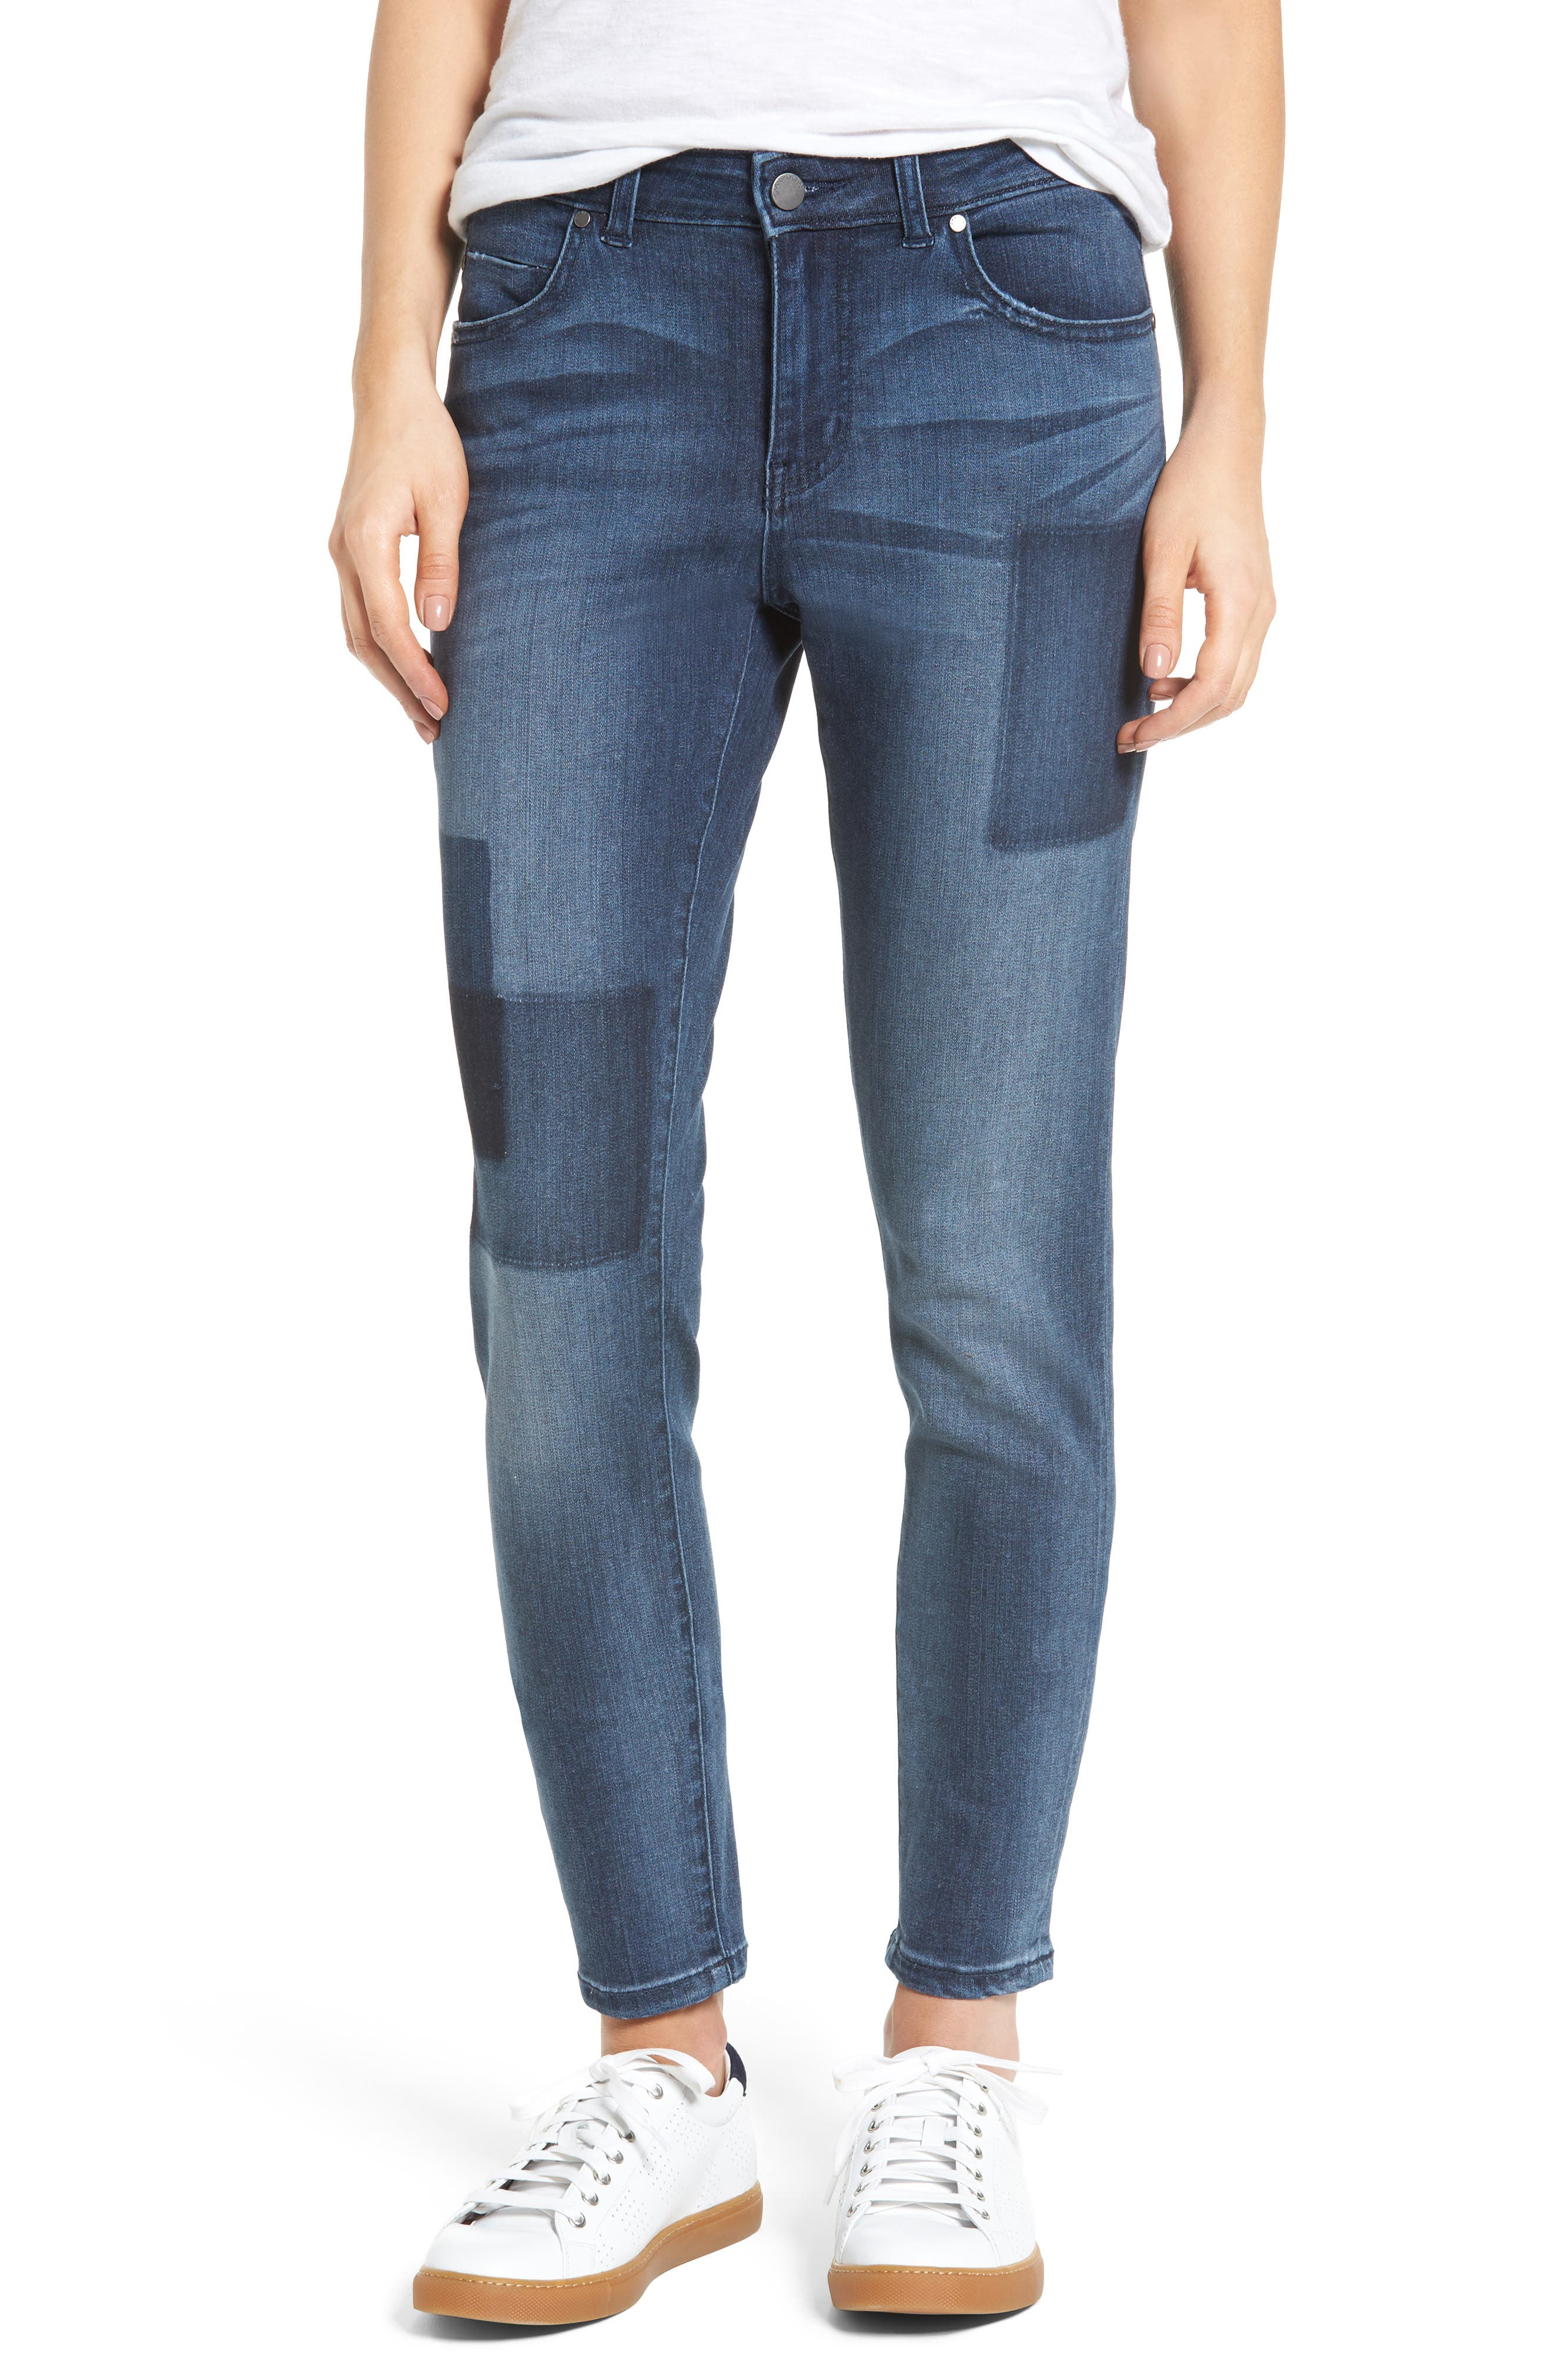 Alternate Image 1 Selected - Caslon® Patchwork Skinny Jeans (Regular & Petite)